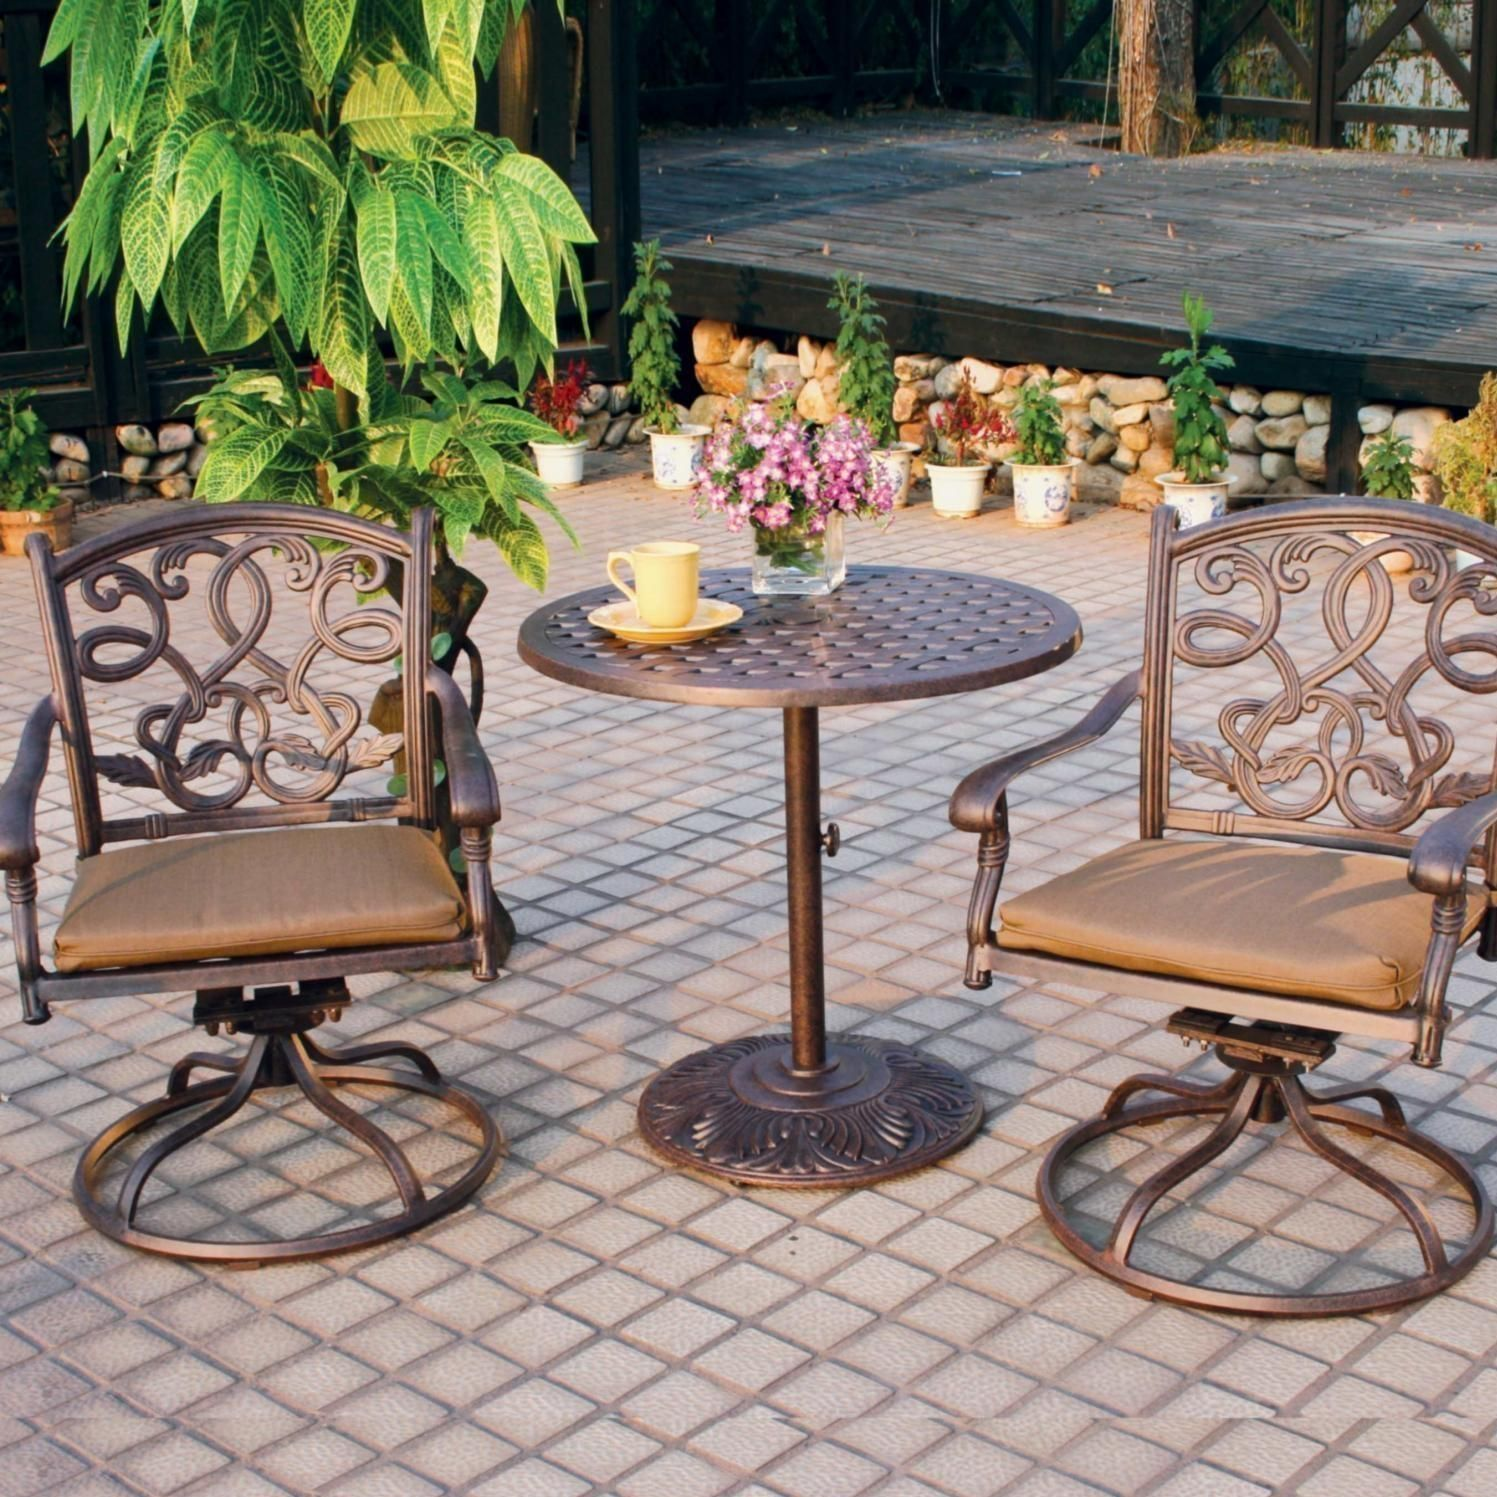 Fantastic Darlee Santa Monica 3 Piece Cast Aluminum Patio Bistro Set Home Interior And Landscaping Ologienasavecom